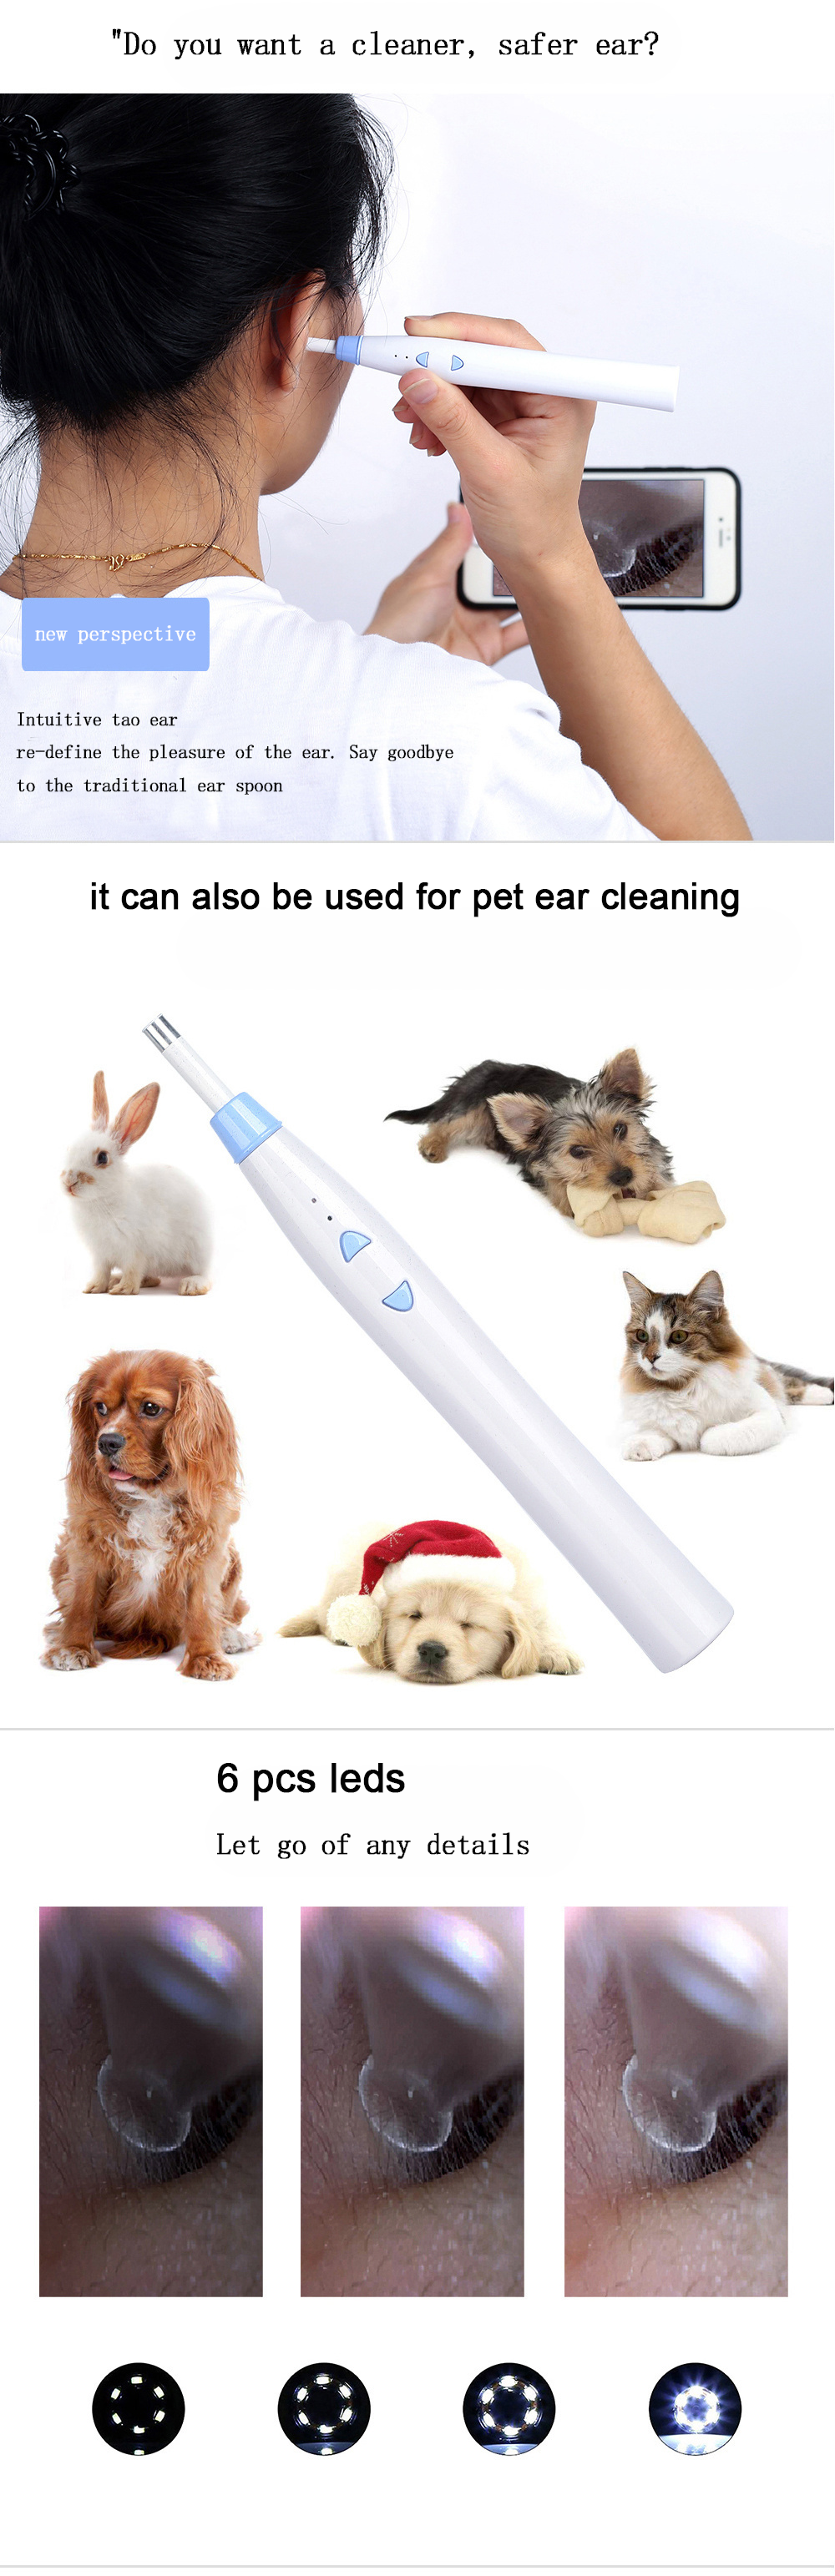 6 led bright lights 70 degree automatic wireless wifi ear endoscope camera for ios android